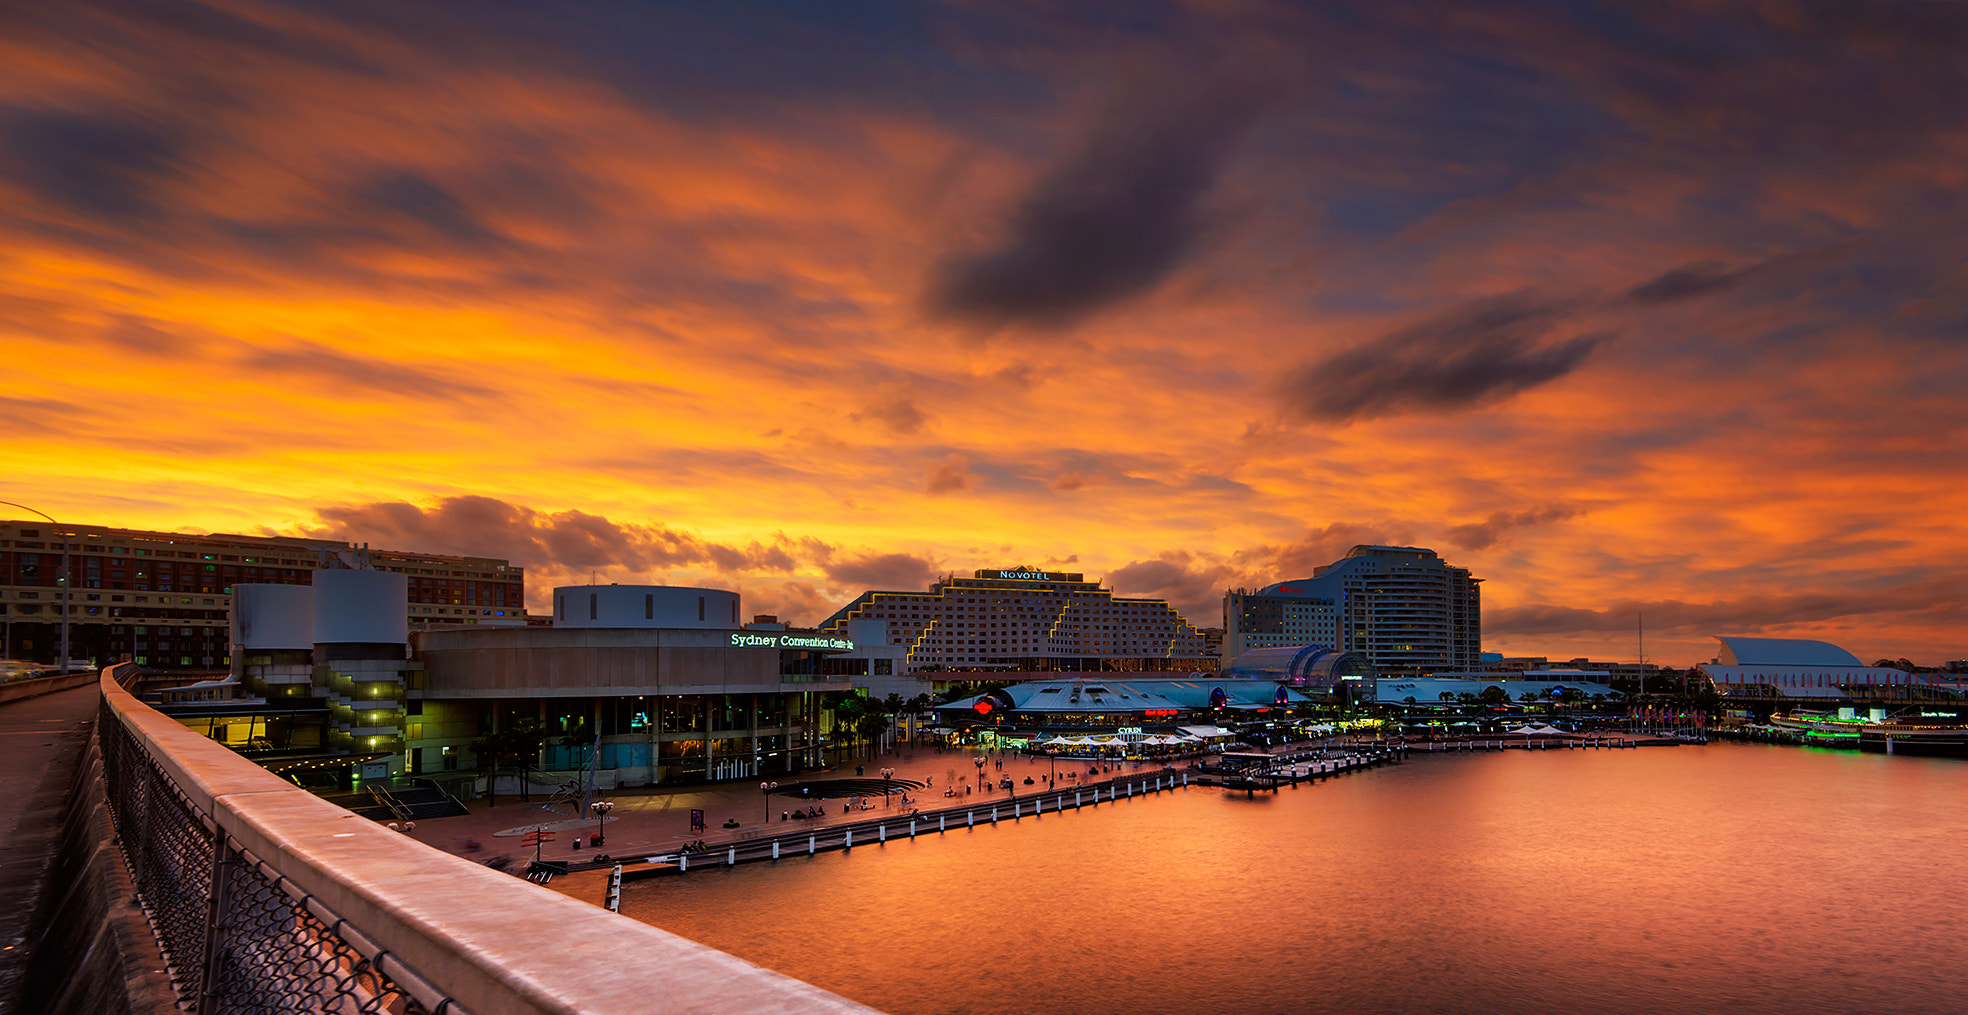 Photograph Darling Harbour on Fire by Goff Kitsawad on 500px